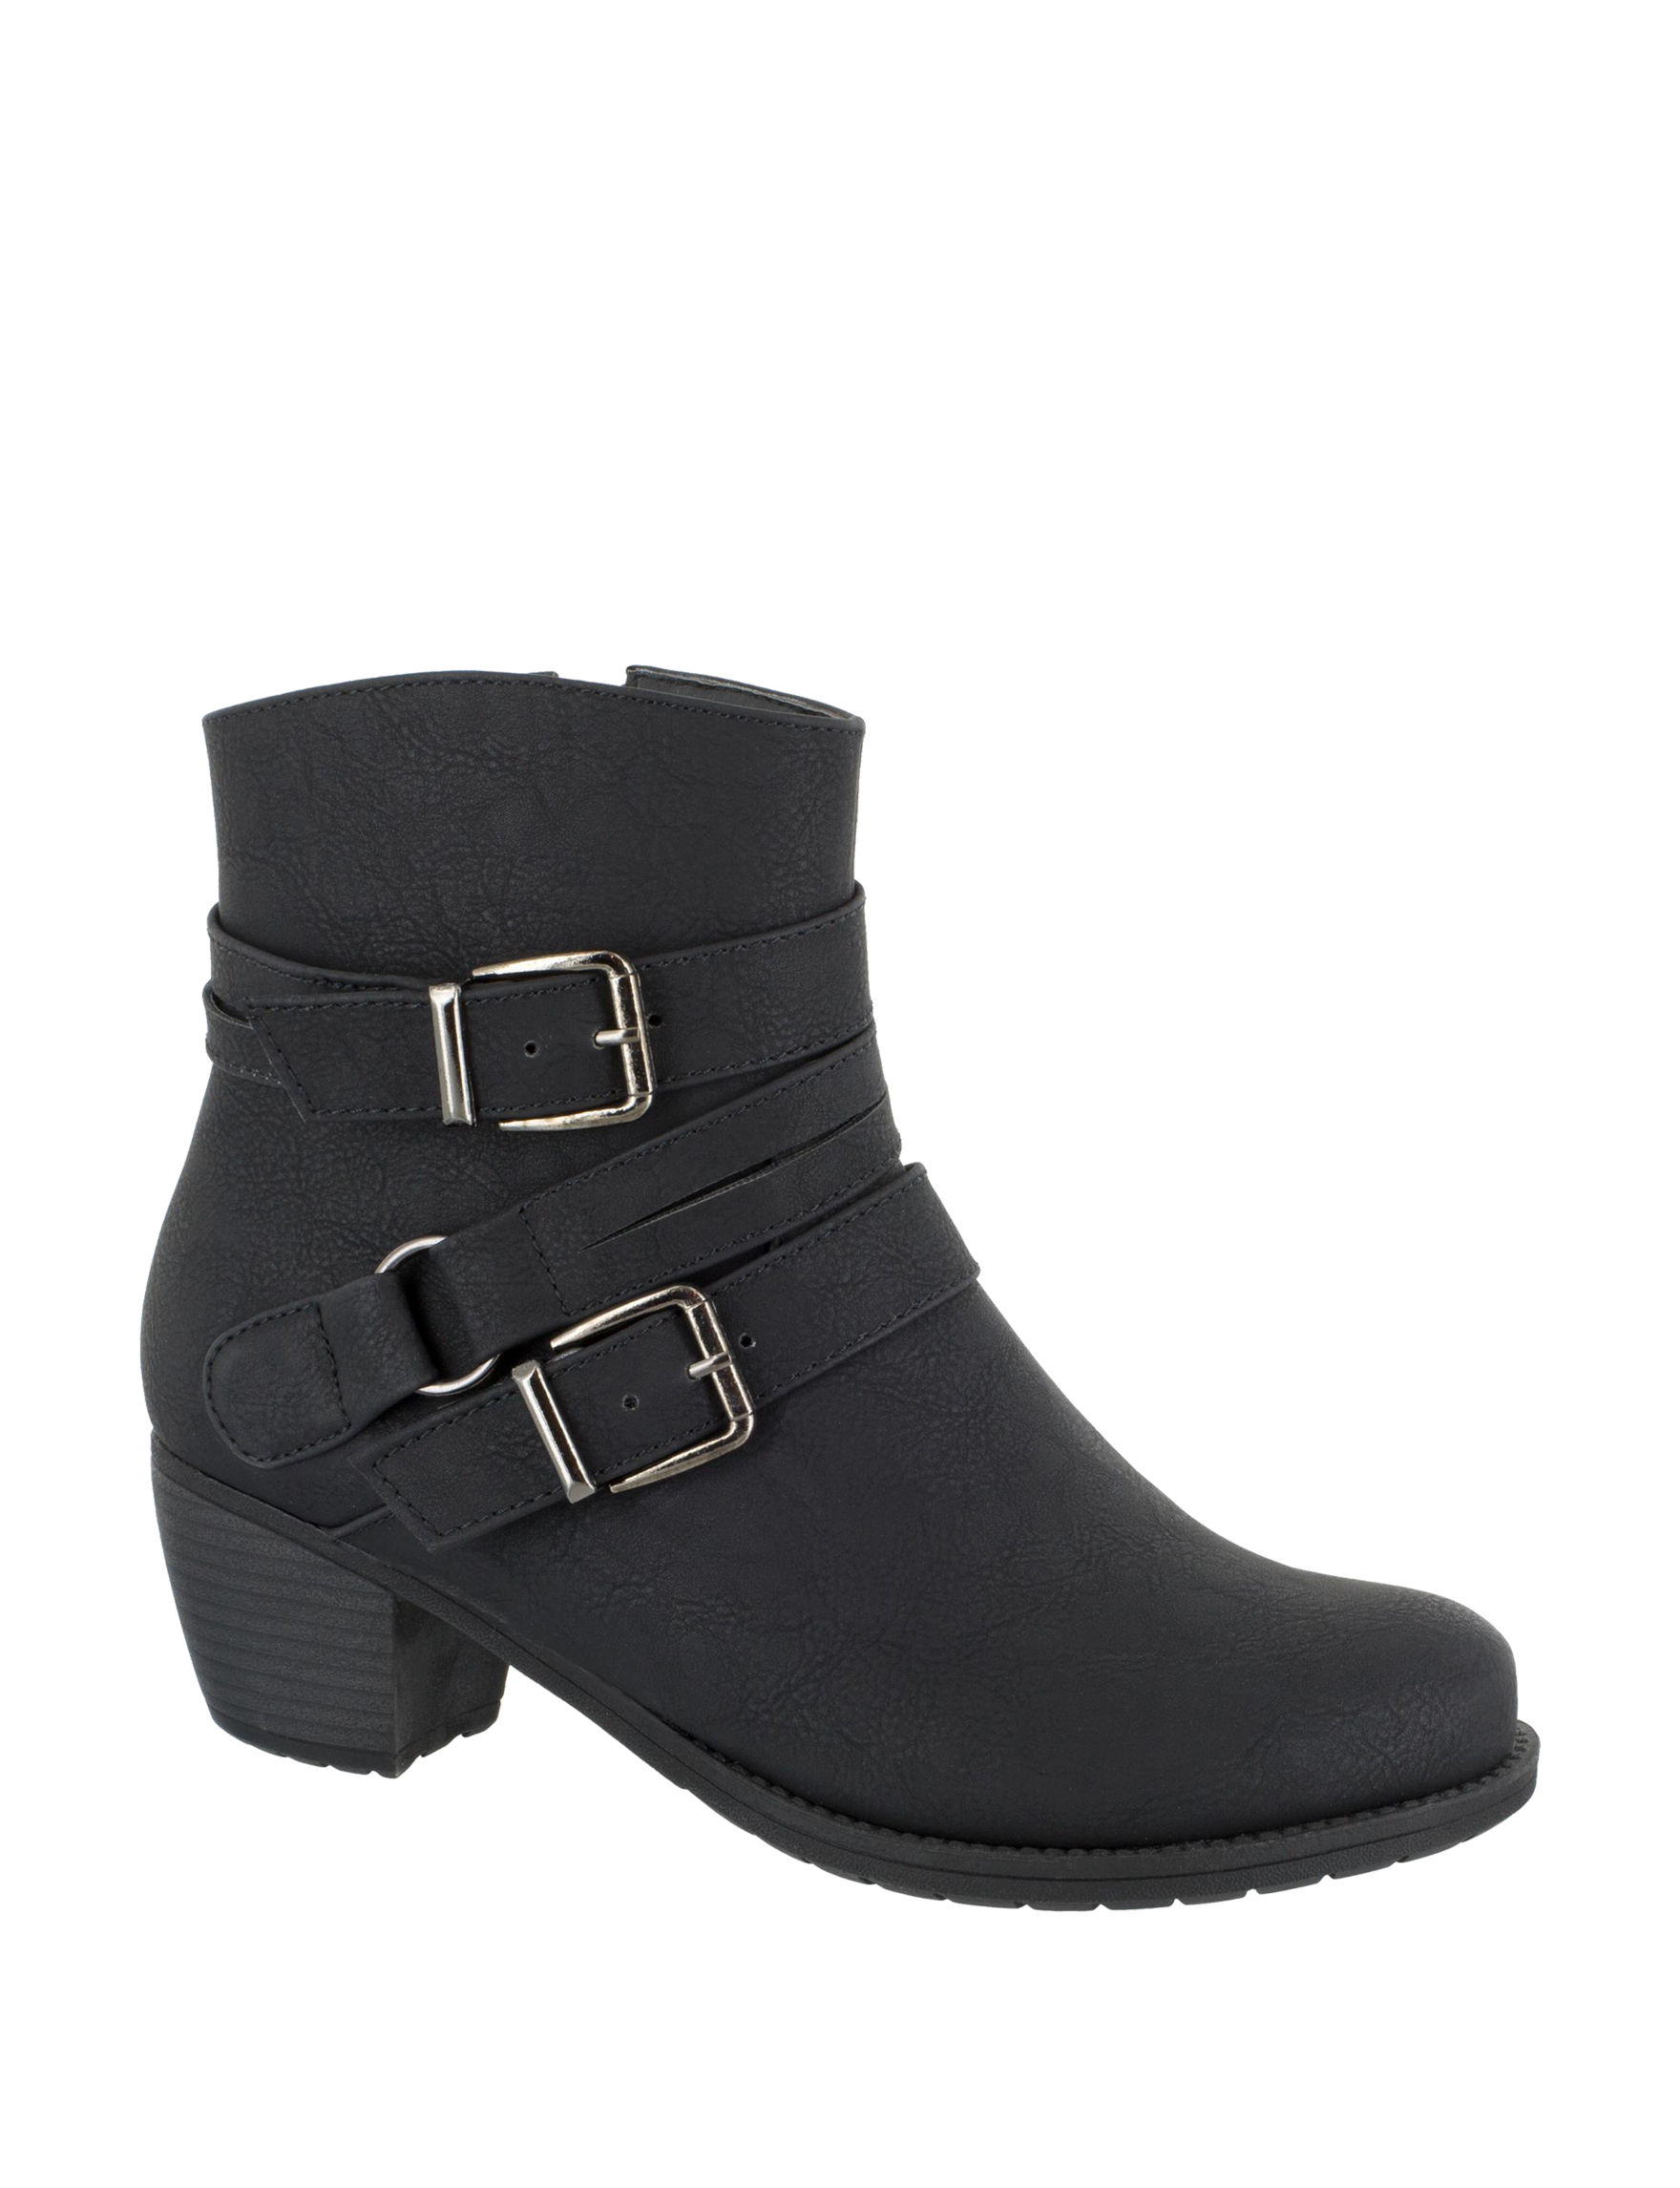 Easy Street Black Ankle Boots & Booties